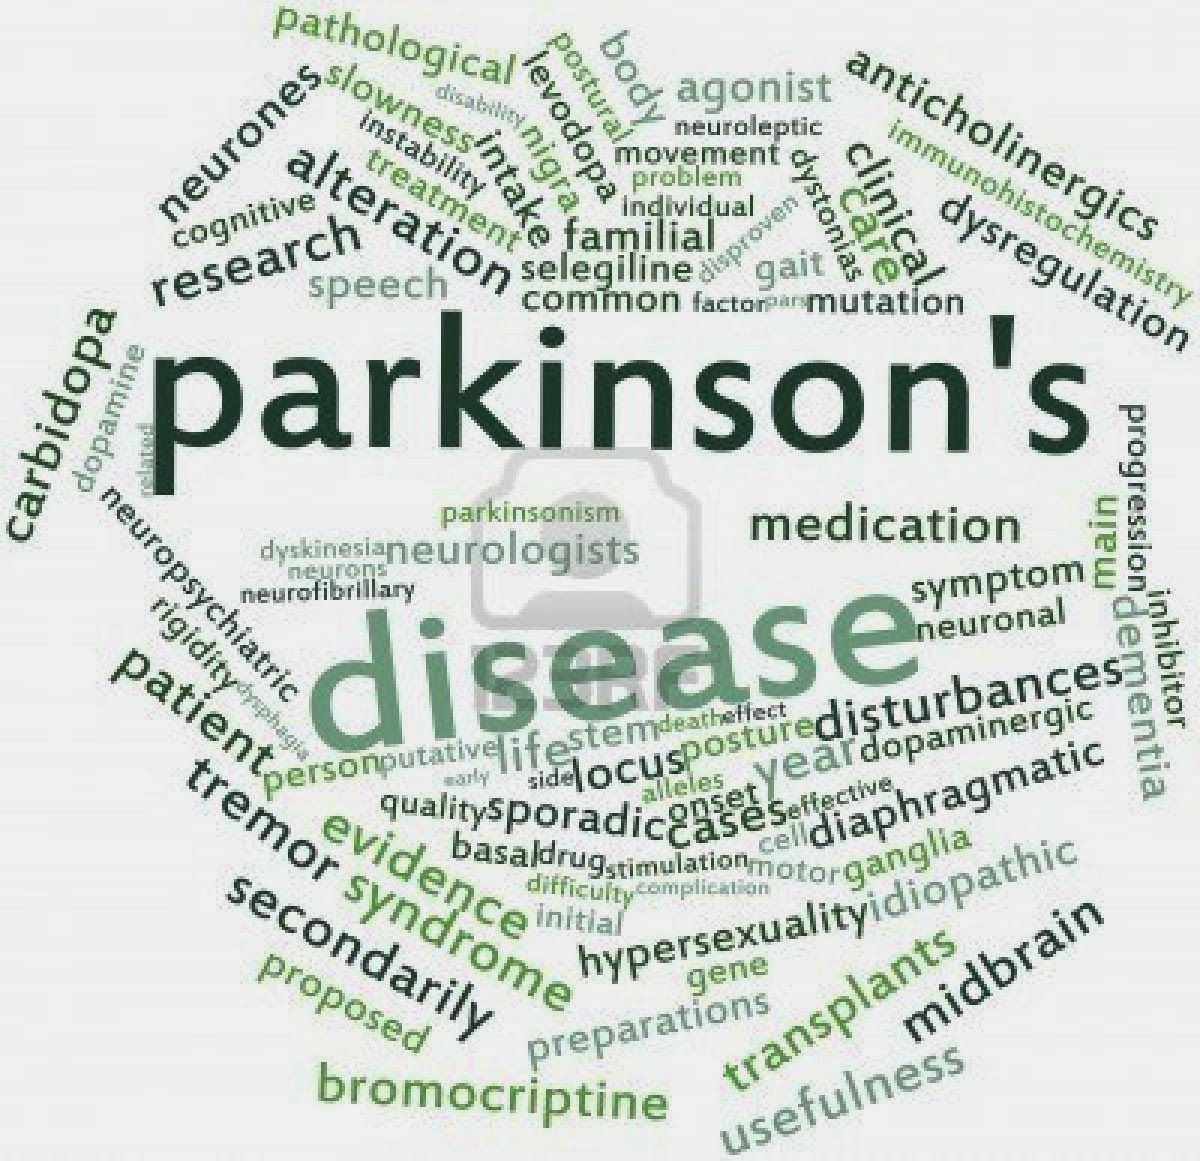 8 Common Treatments for Parkinson's Disease